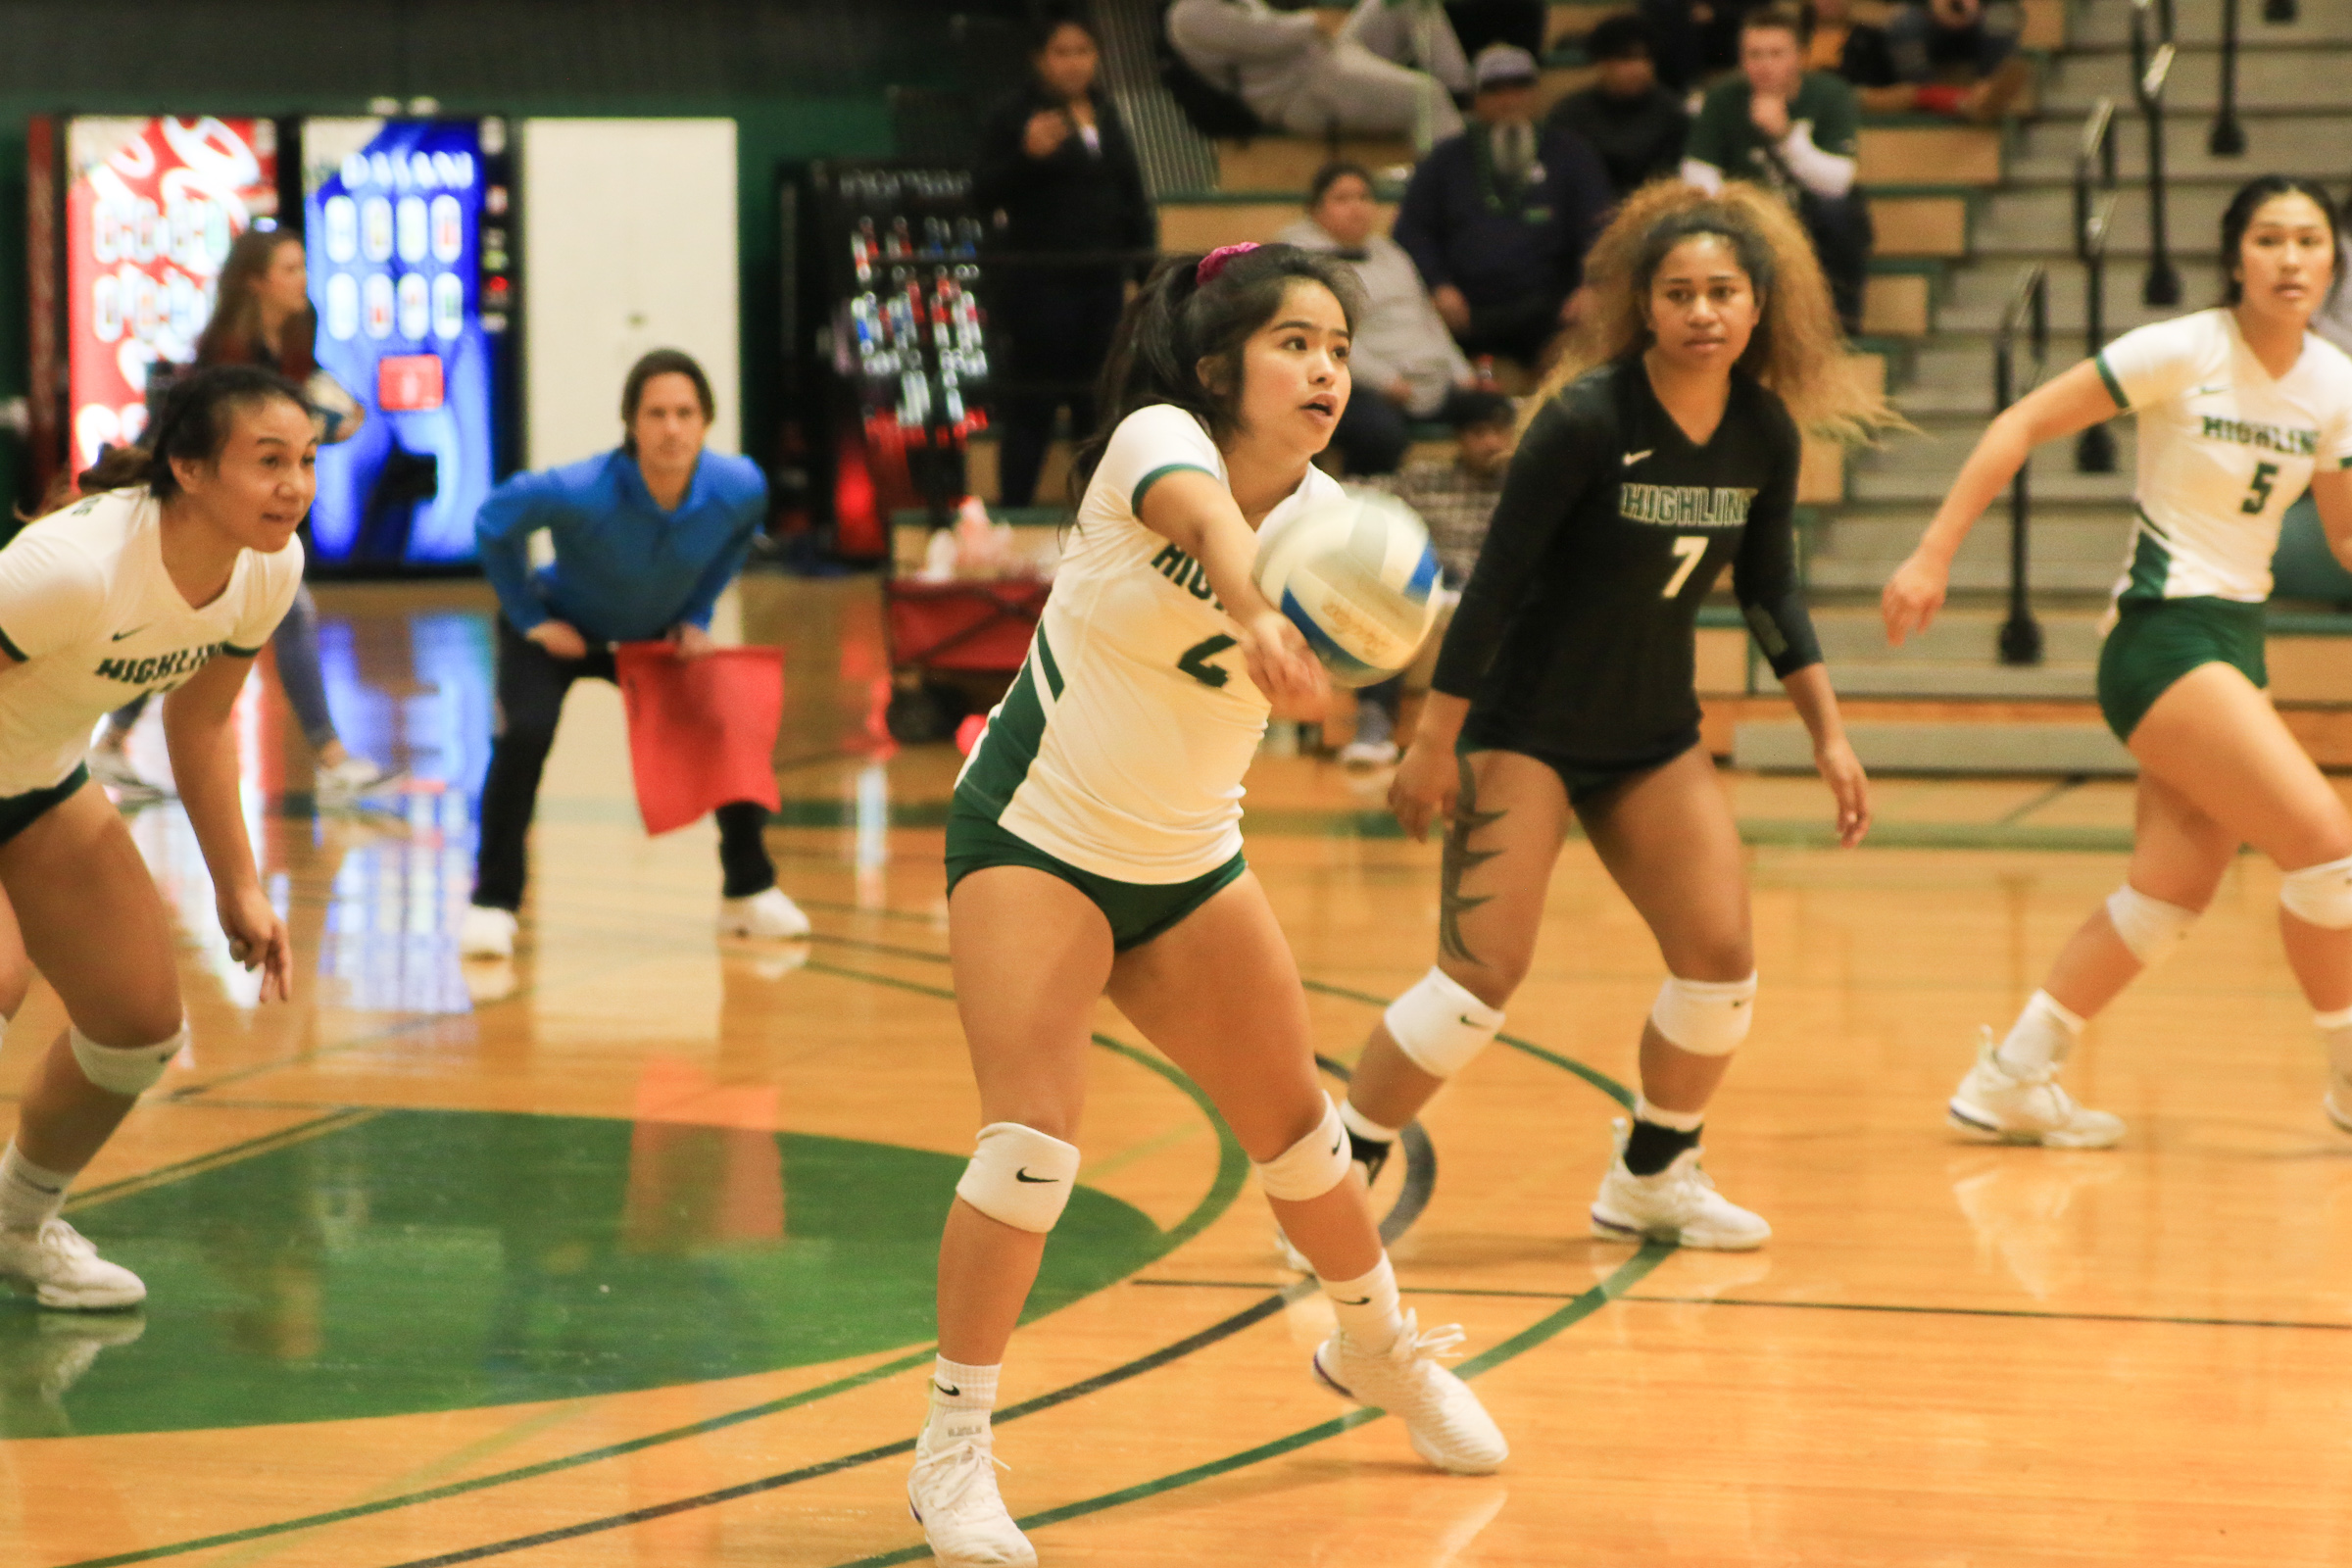 Women's Volleyball Action Photo Home Page Gallery